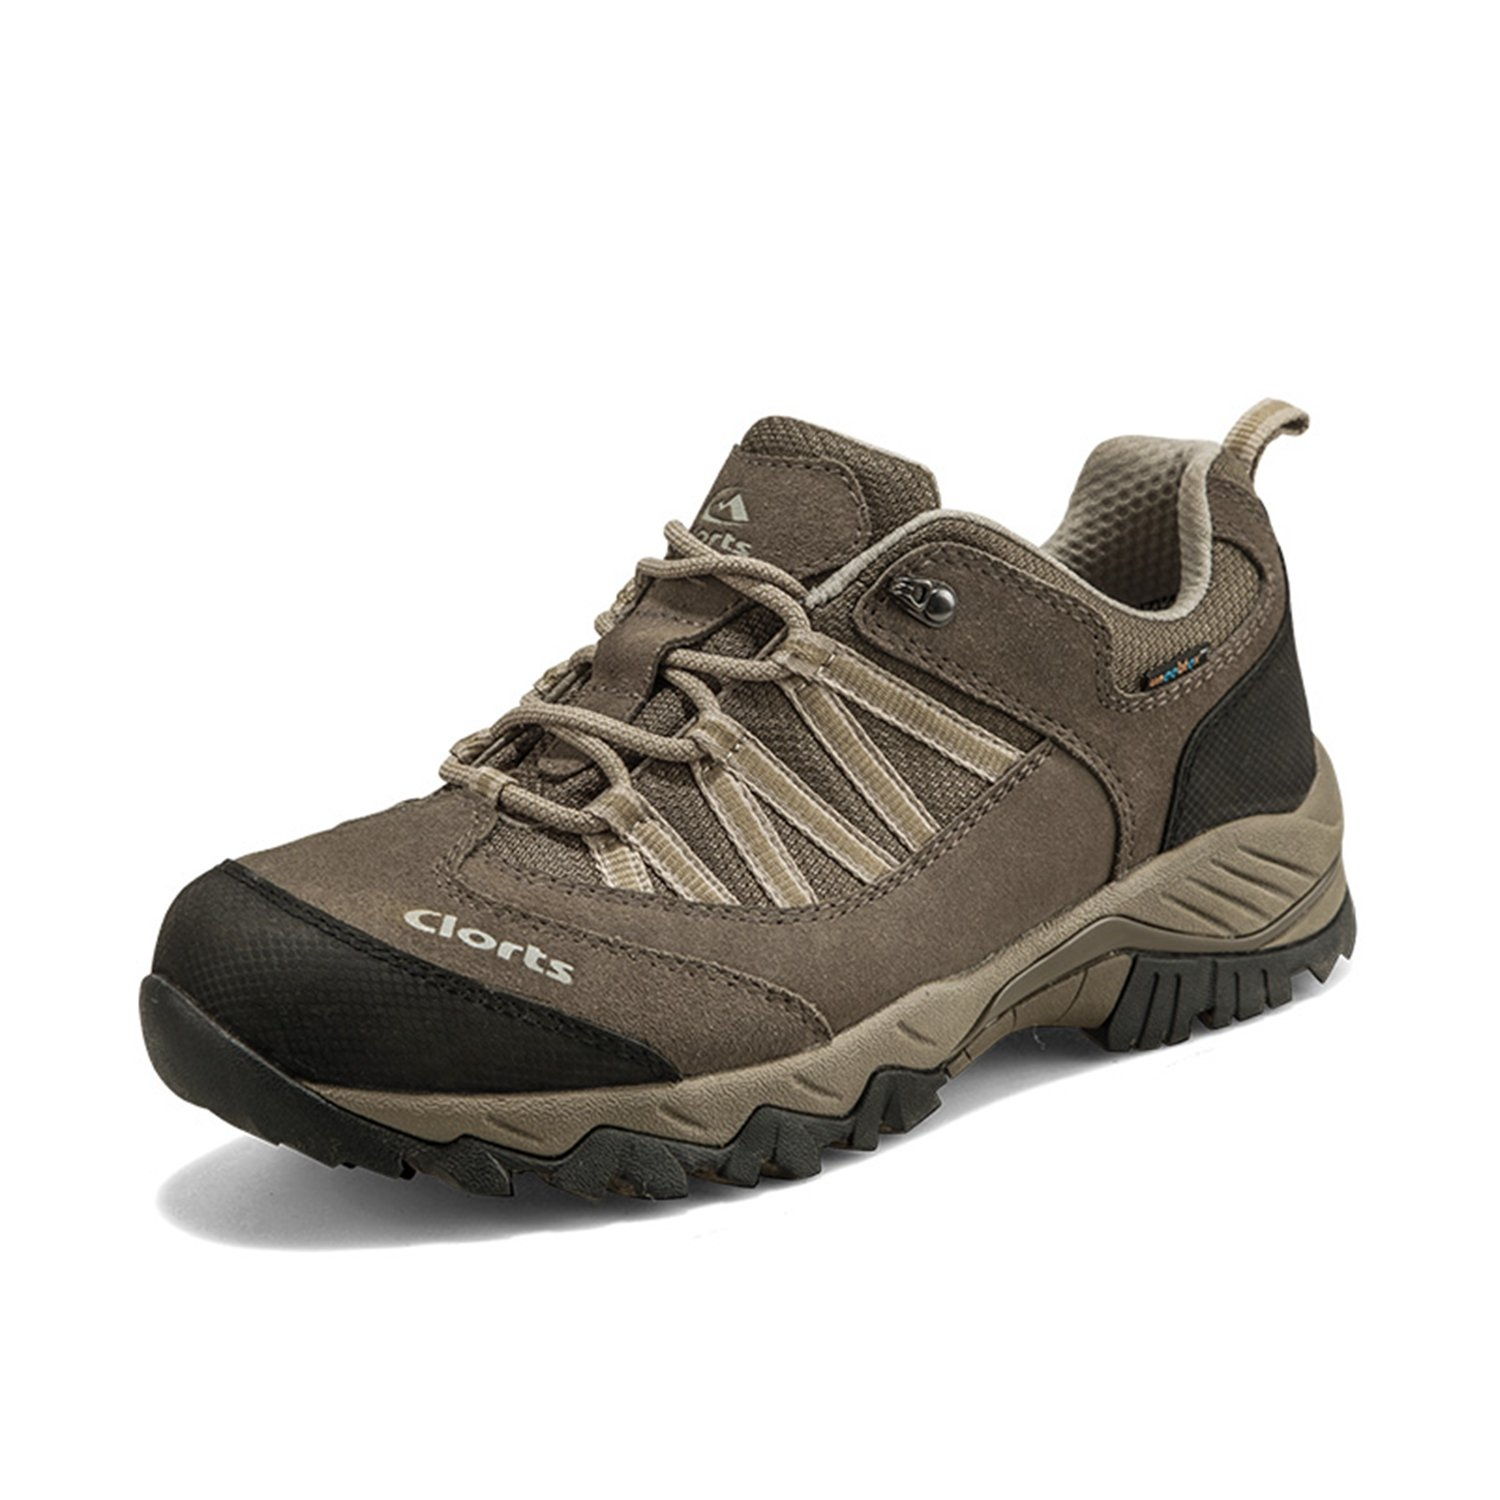 Beige 8 D(M) US Qianling Collection Men's Outdoor Suede Leather Waterproof Hiking shoes